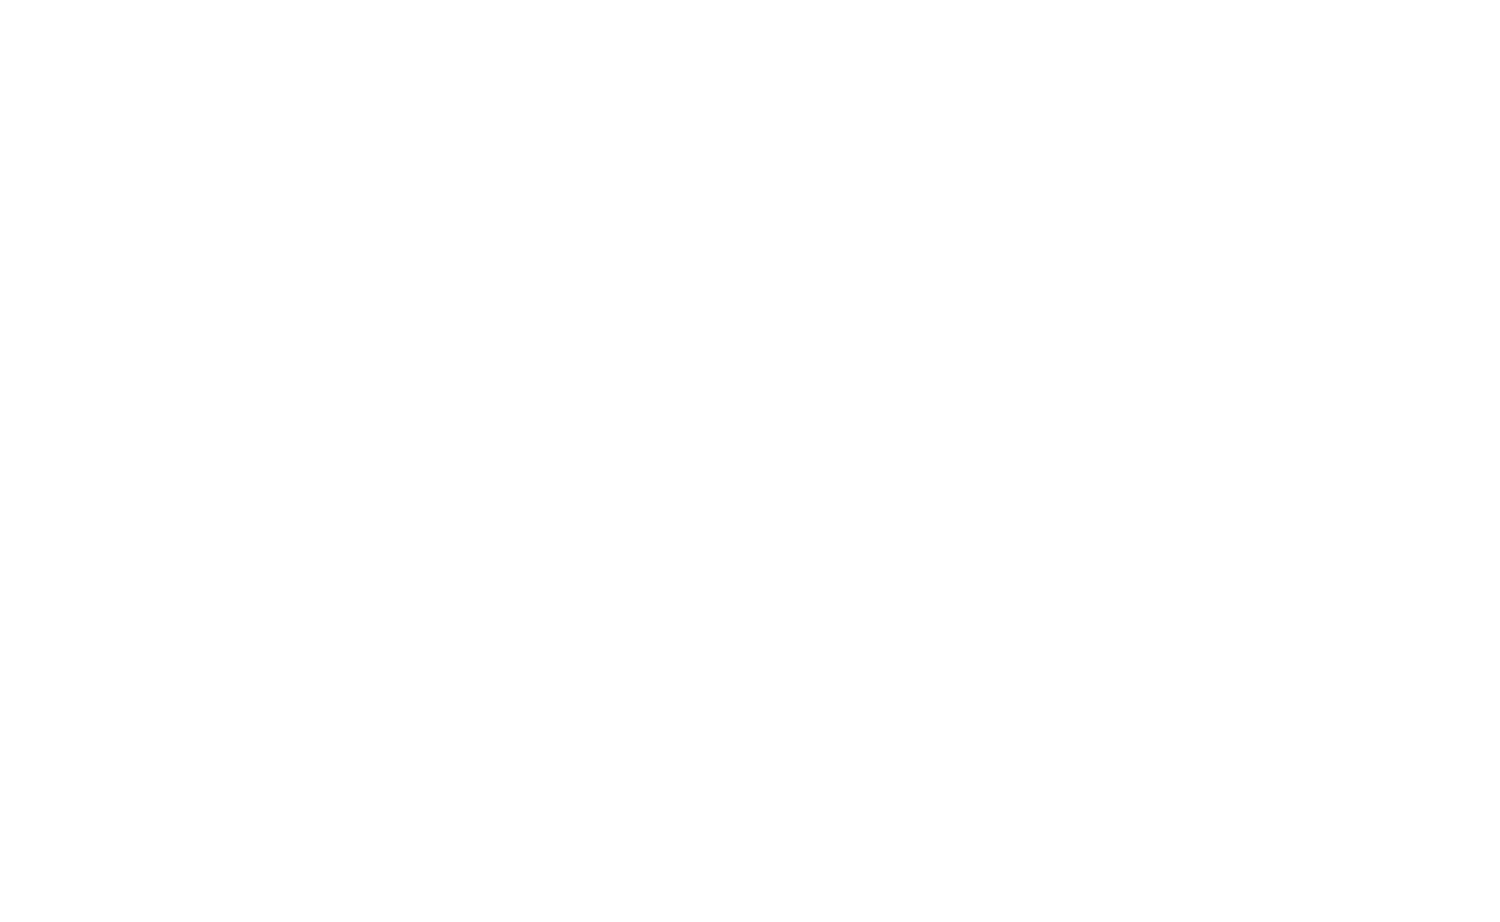 UCC Commerce Society